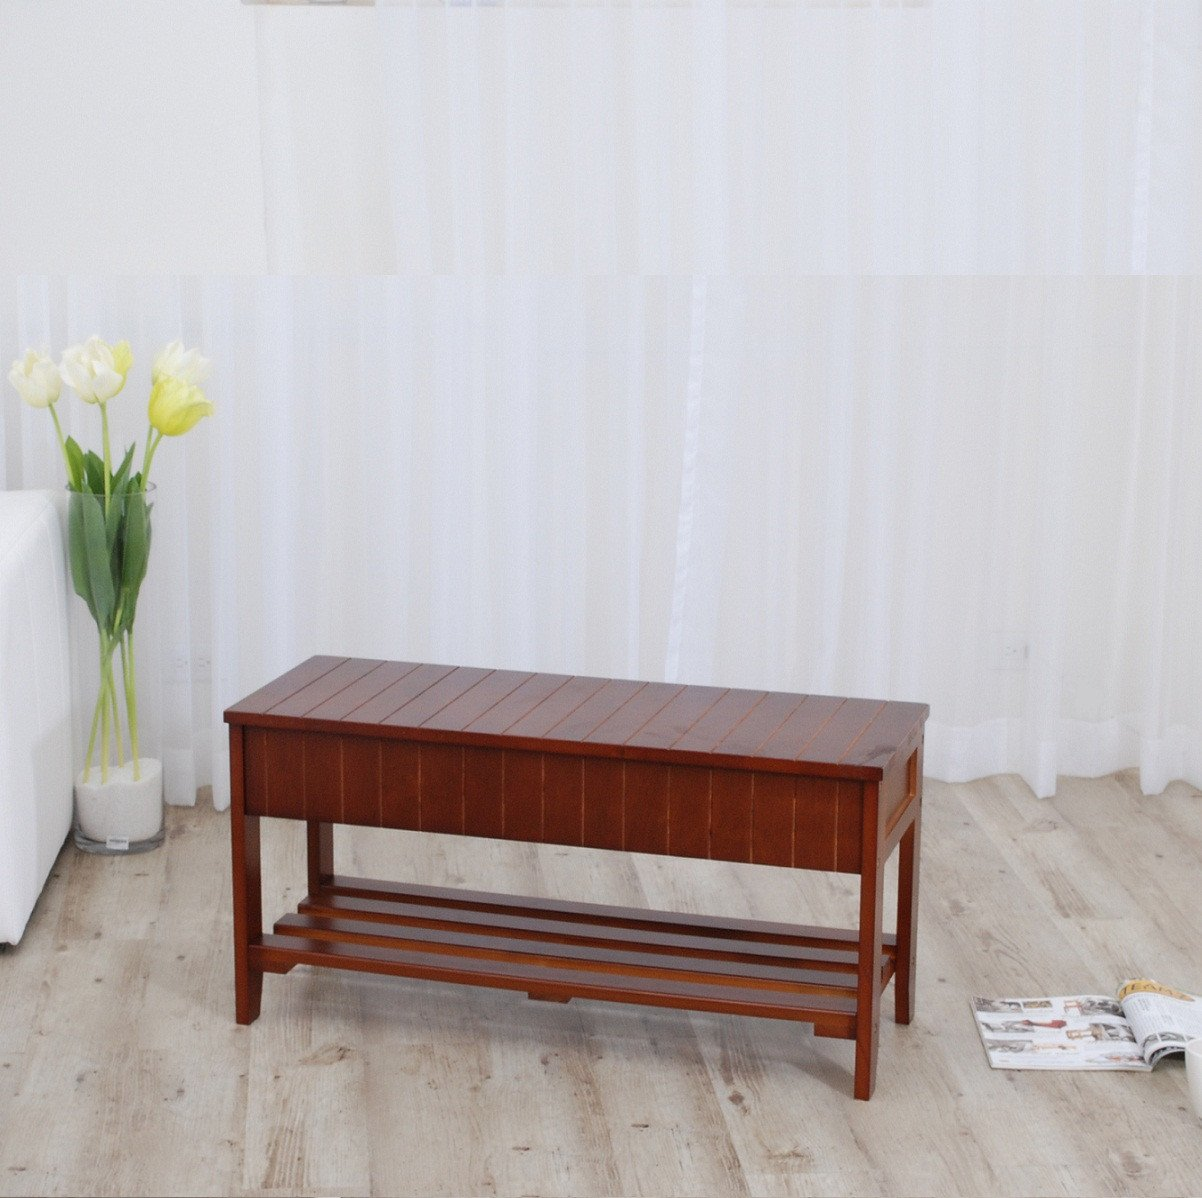 Rennes Cherry Finish Quality Solid Wood Shoe Bench With Storage